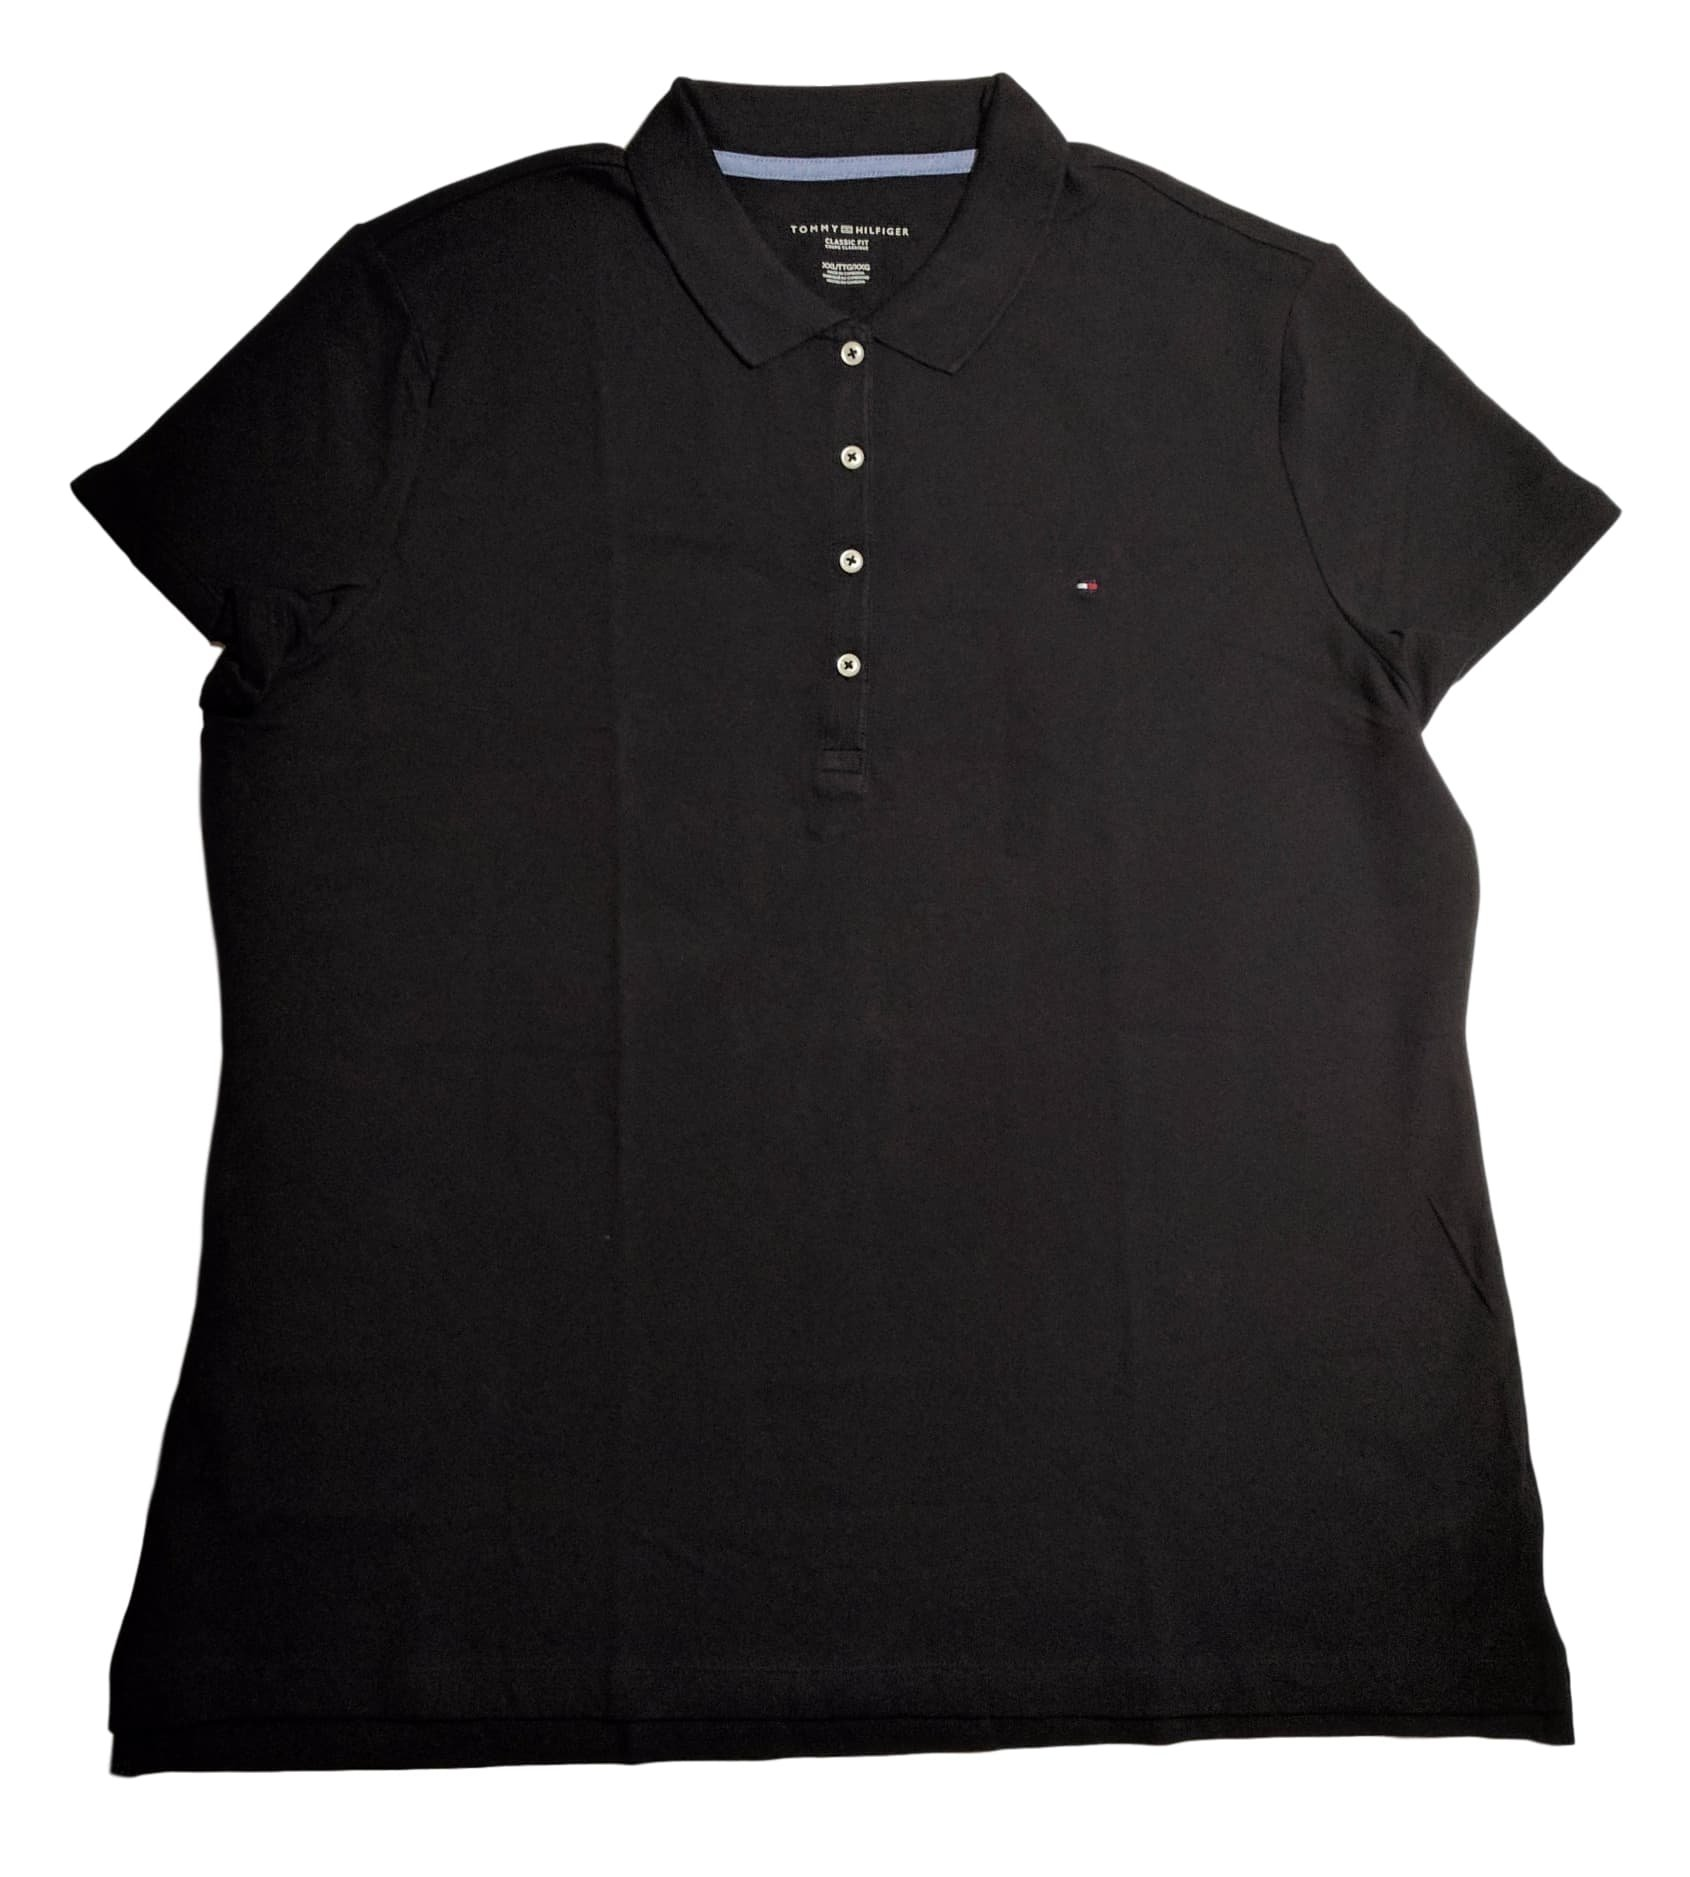 27d09659 Galleon - Tommy Hilfiger Womens Classic Fit Logo Polo T-Shirt (S, Black)